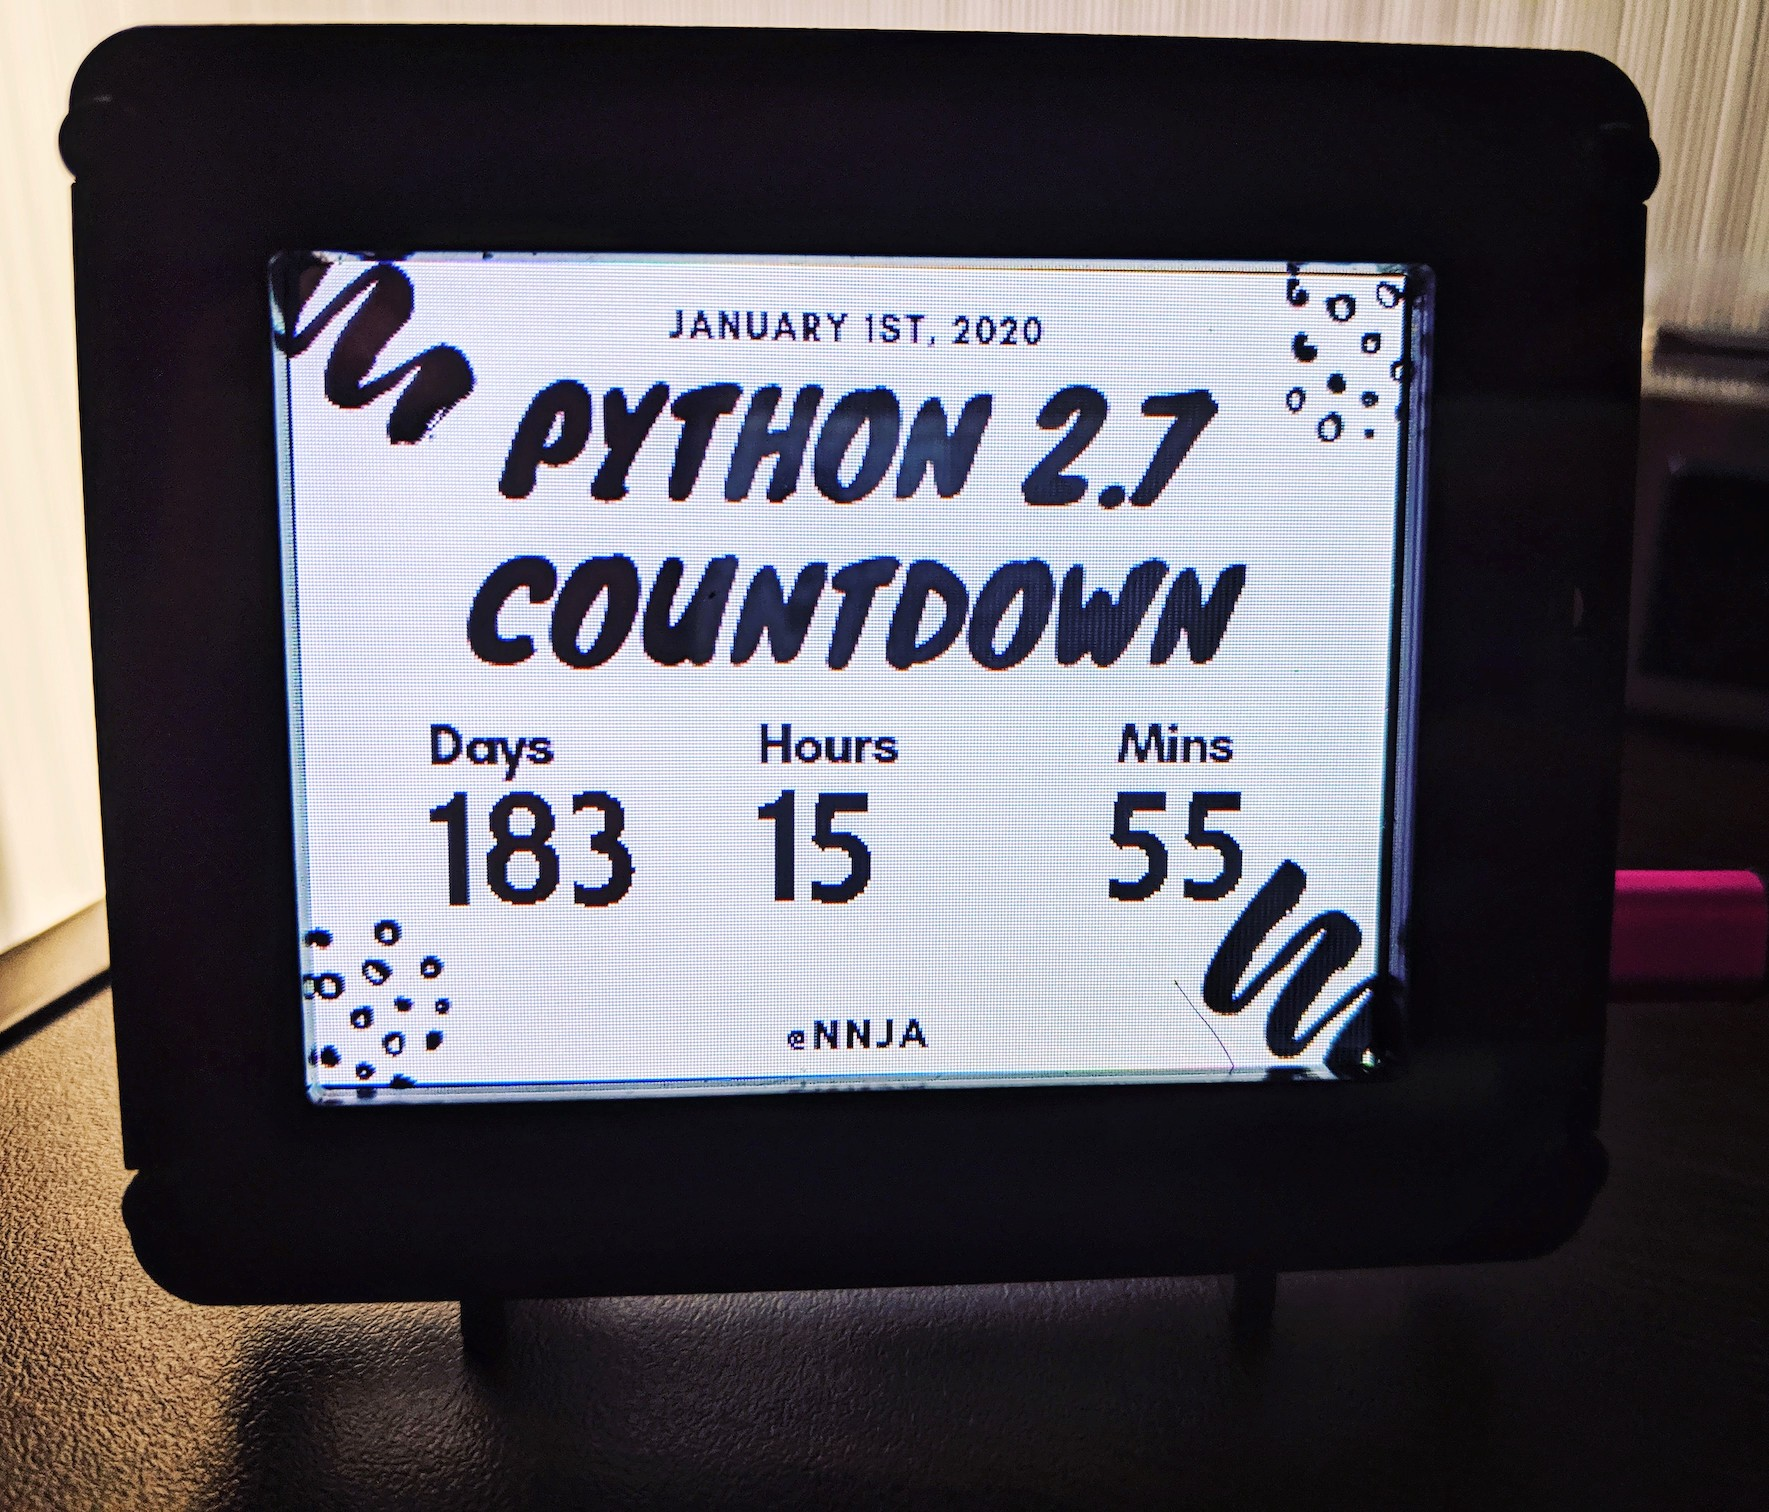 A Desktop Python 2 7 Countdown Timer with CircuitPython and PyPortal